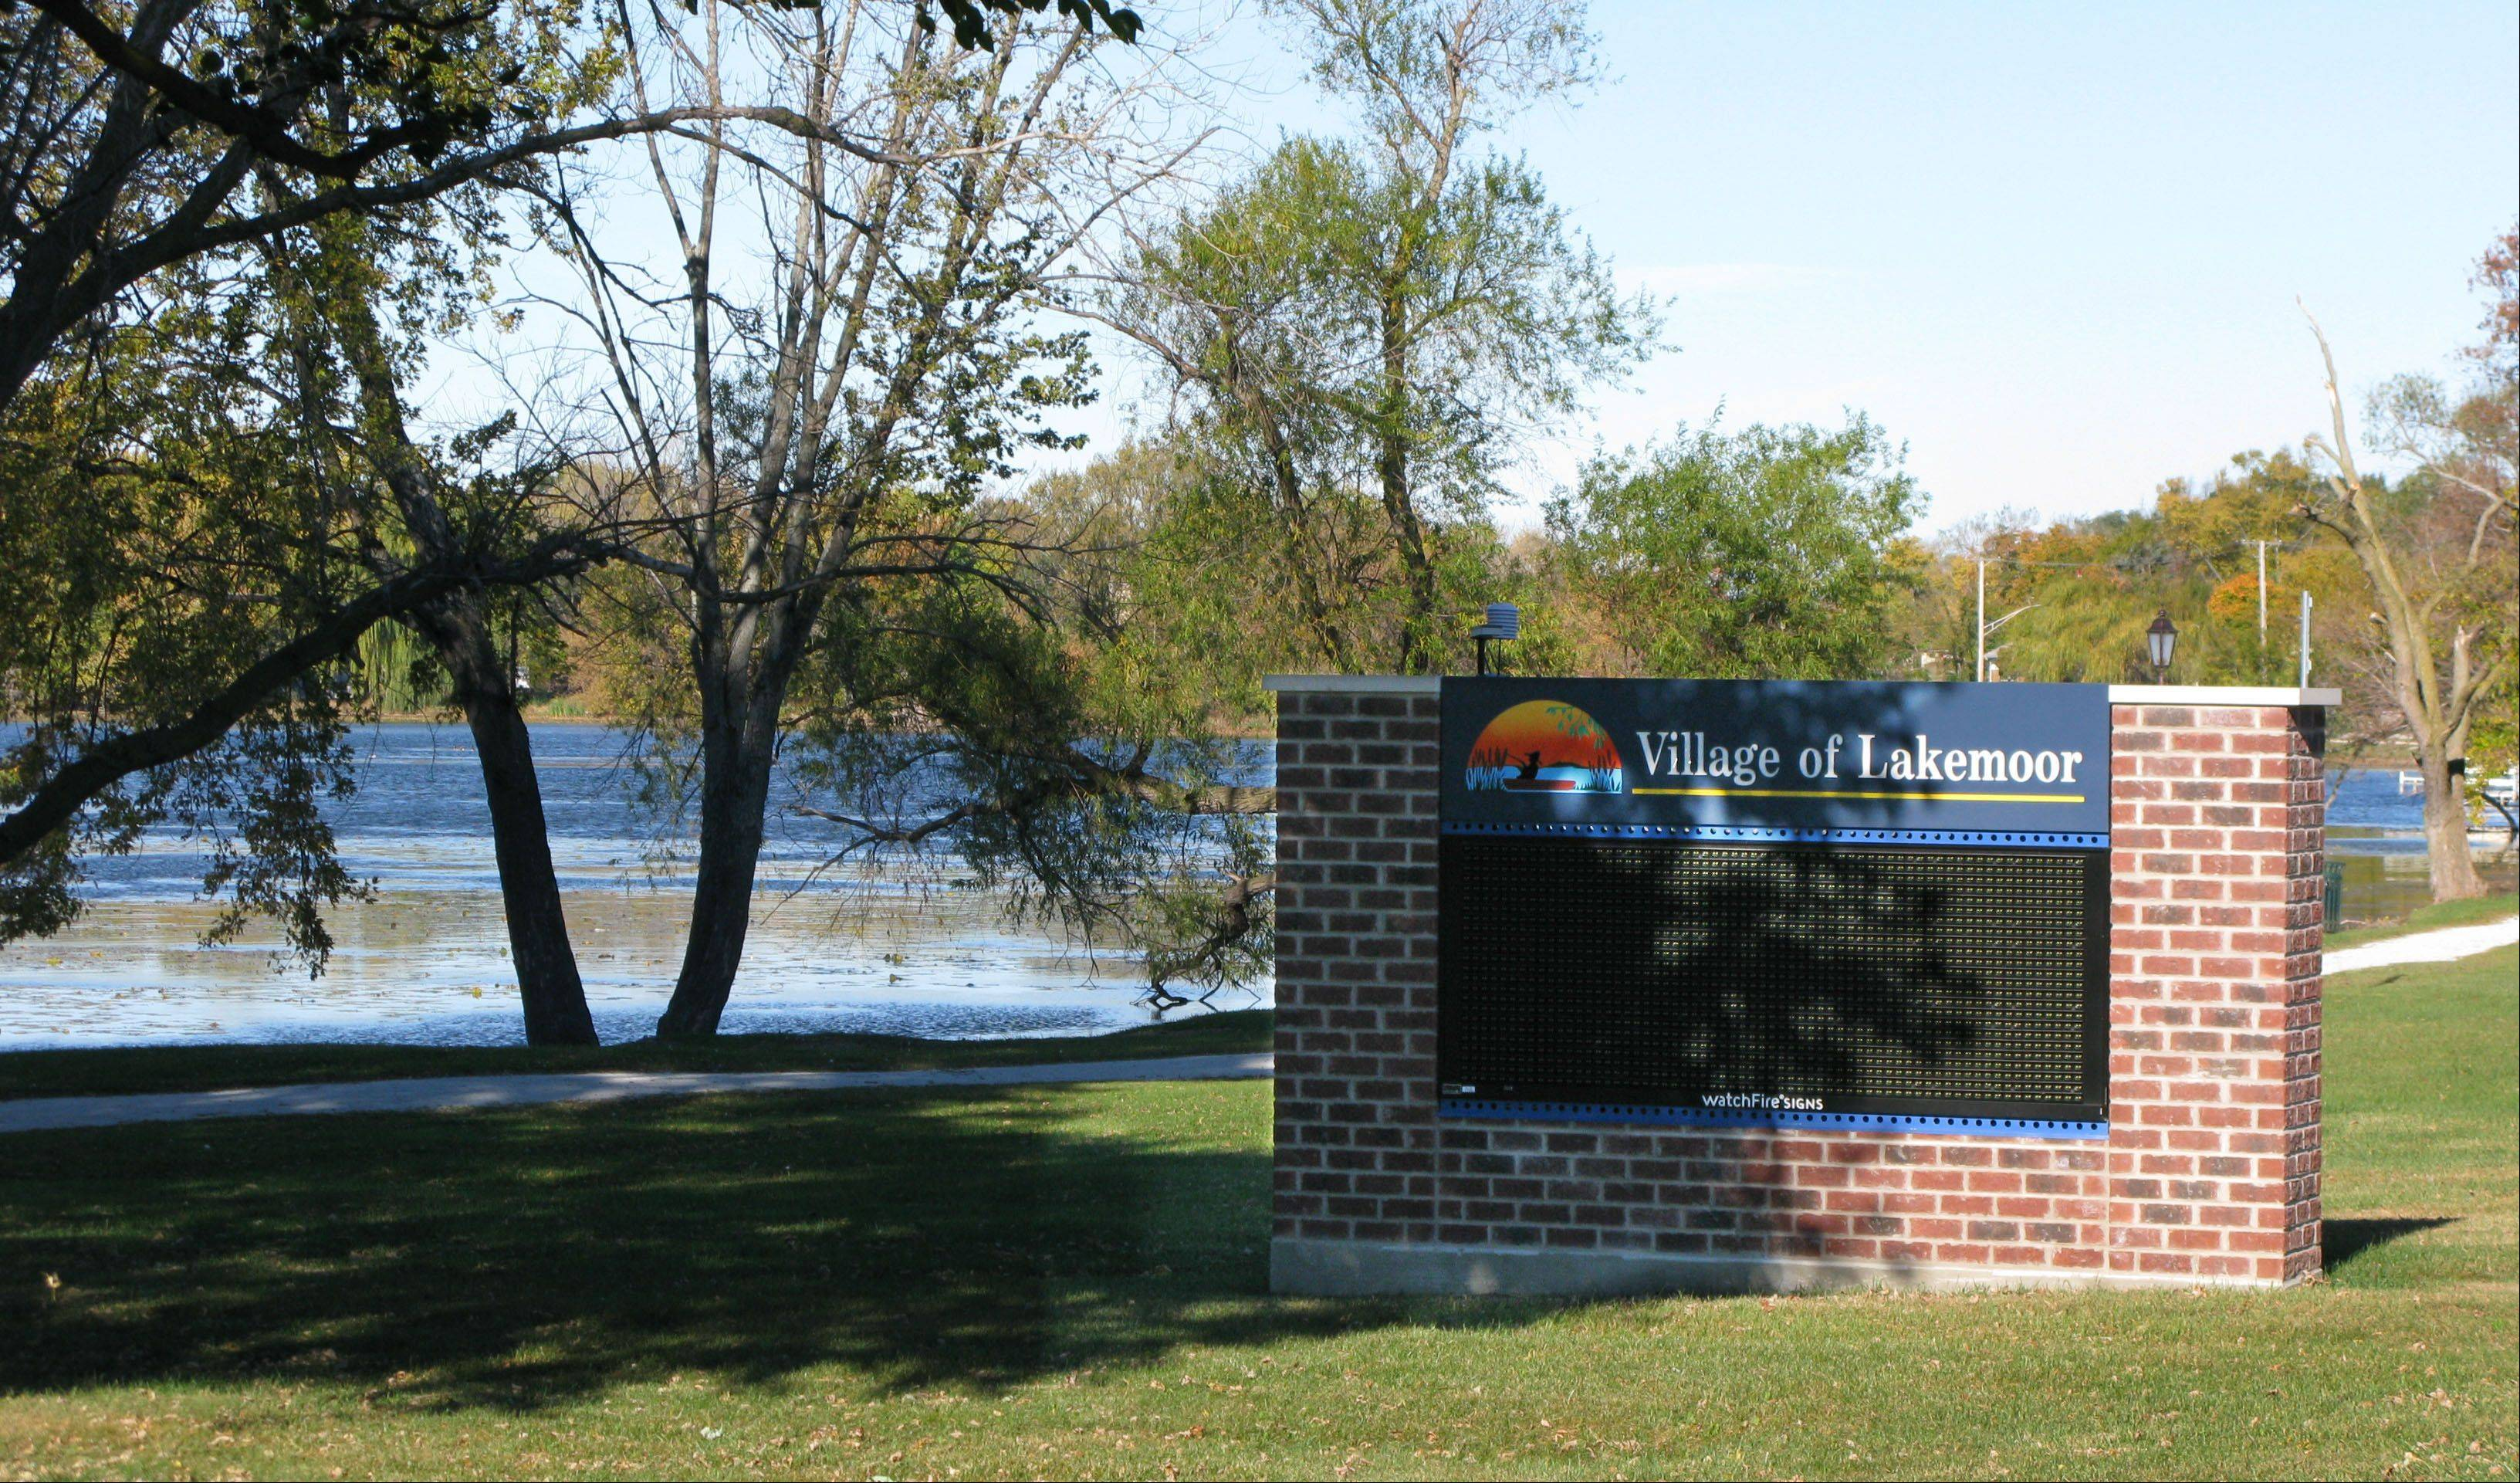 Lakemoor officials want to capitalize on the village's natural assets.